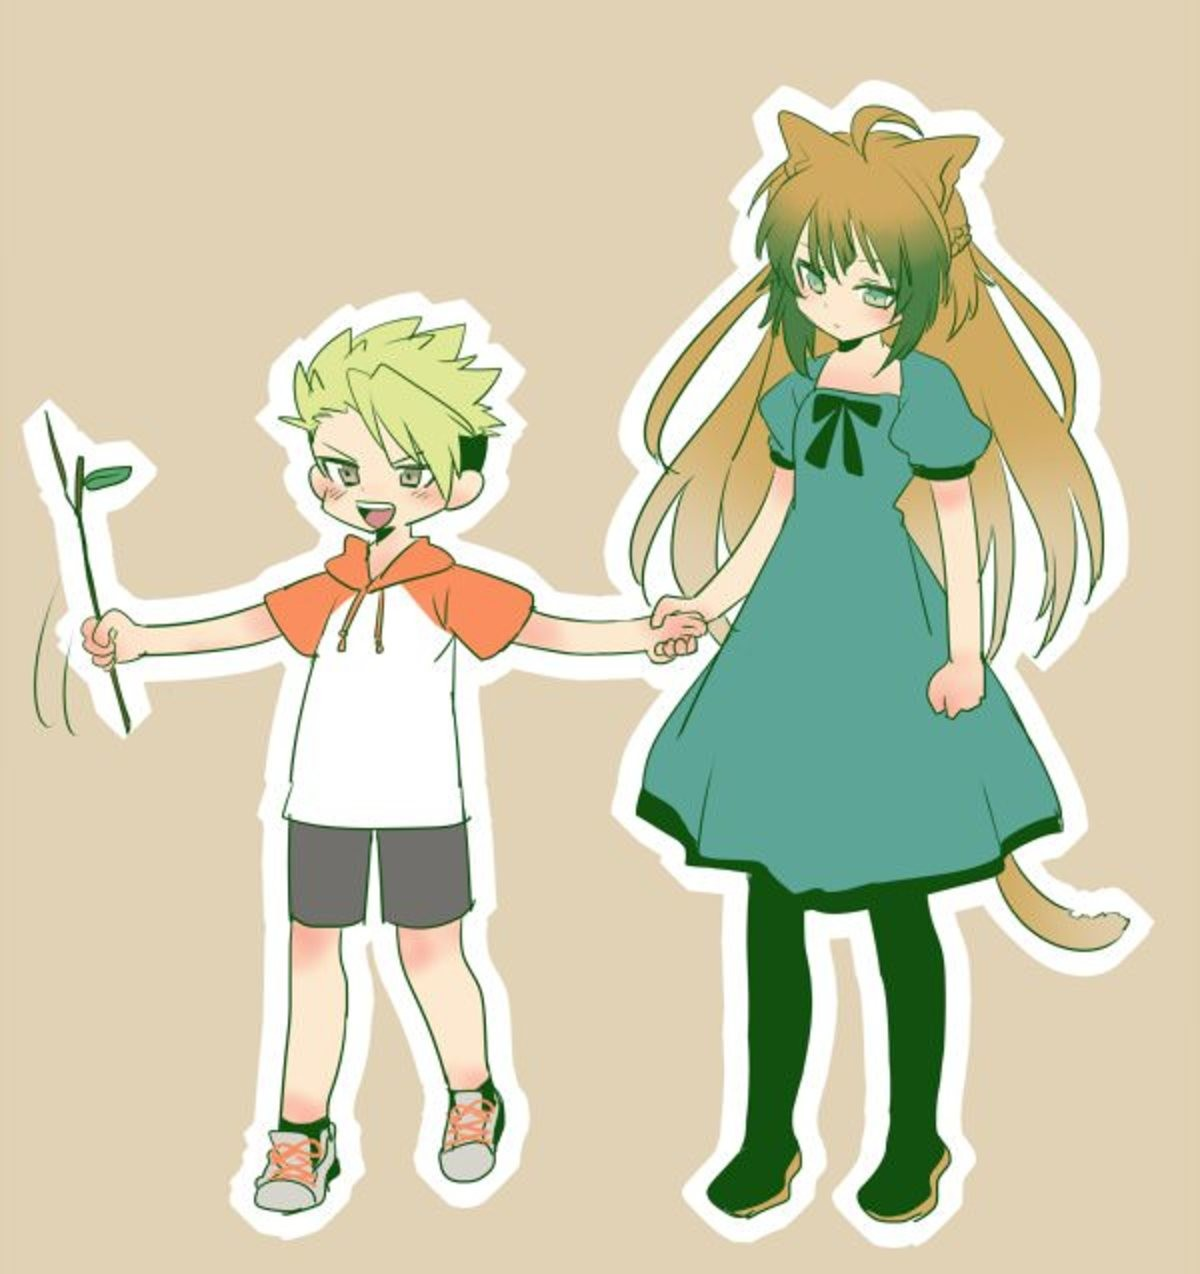 Chiron and Smol Achilles & Atalanta. Source kittenandanunripecarrot/ vember27/status/992432323097325568 join list: Fate (420 subs)Mention History join list:. It is important to learn to be both humble in victory and gracious in defeat. There is no shame in losing a fair contest, only in how you behave after the fact.